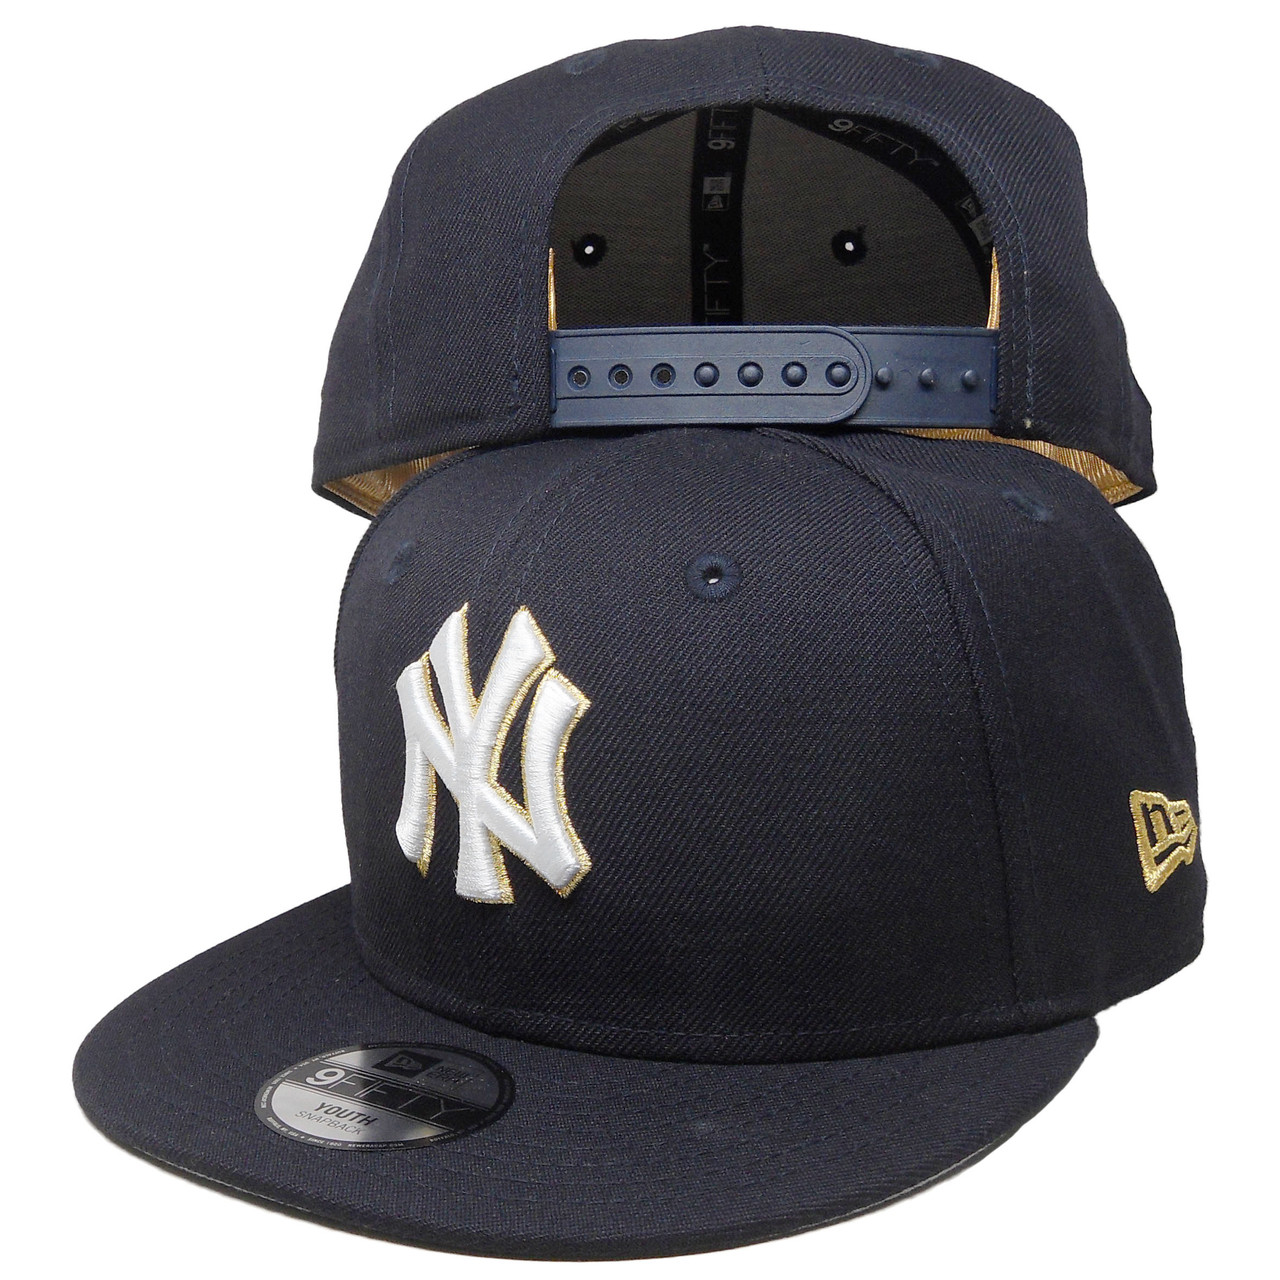 df57dc58b66 ... closeout new york yankees new era kids triumph turn 9fifty snapback  navy white gold 584a8 0be04